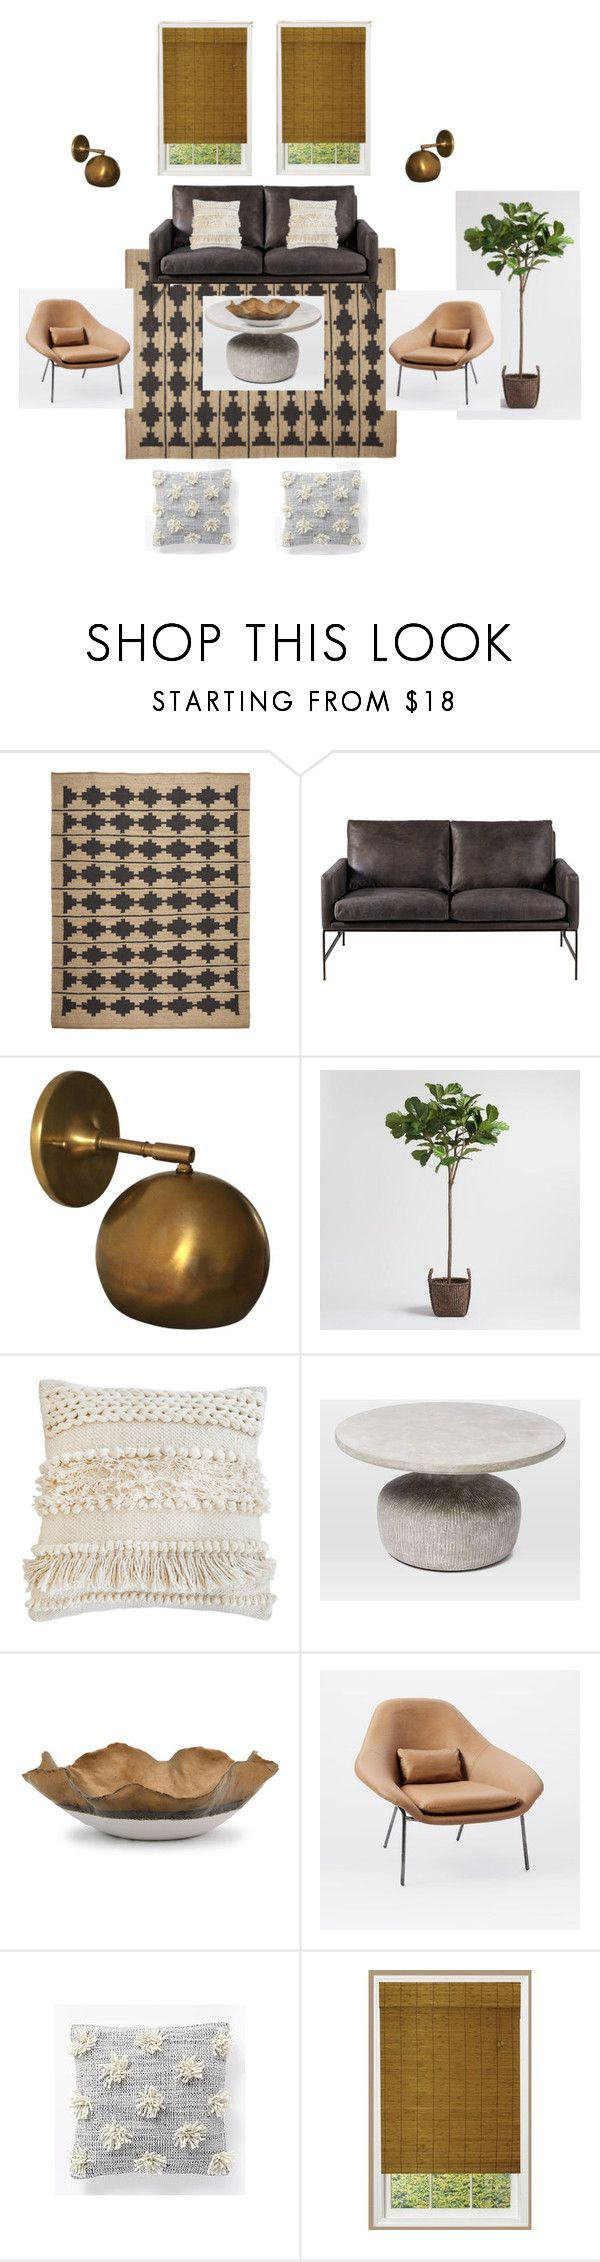 """Boho modern by Joy Sheerer Design"" by joyseven on Polyvore featuring interior, interiors, interior design, home, home decor, interior decorating, Schoolhouse Electric, Cost Plus World Market, Pom Pom at Home and West Elm"